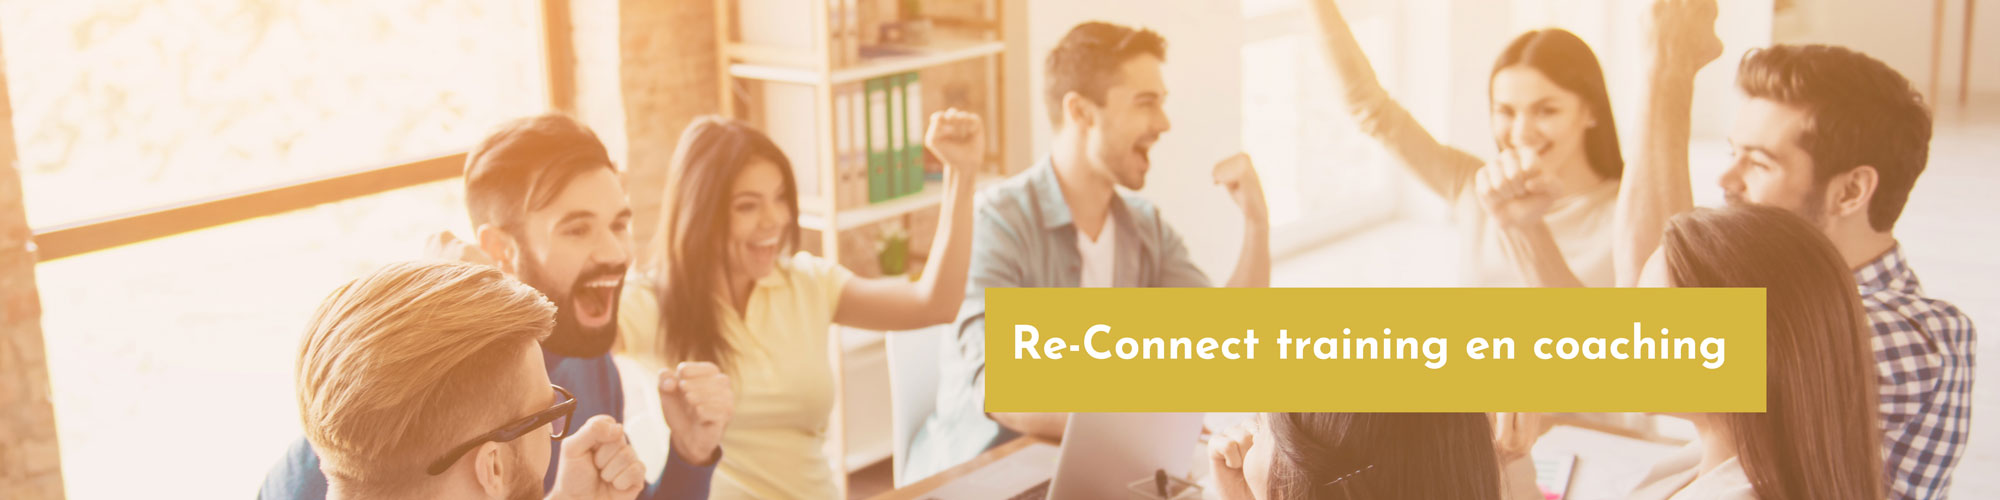 Re-connect training en coaching mikt op meer verbinding.